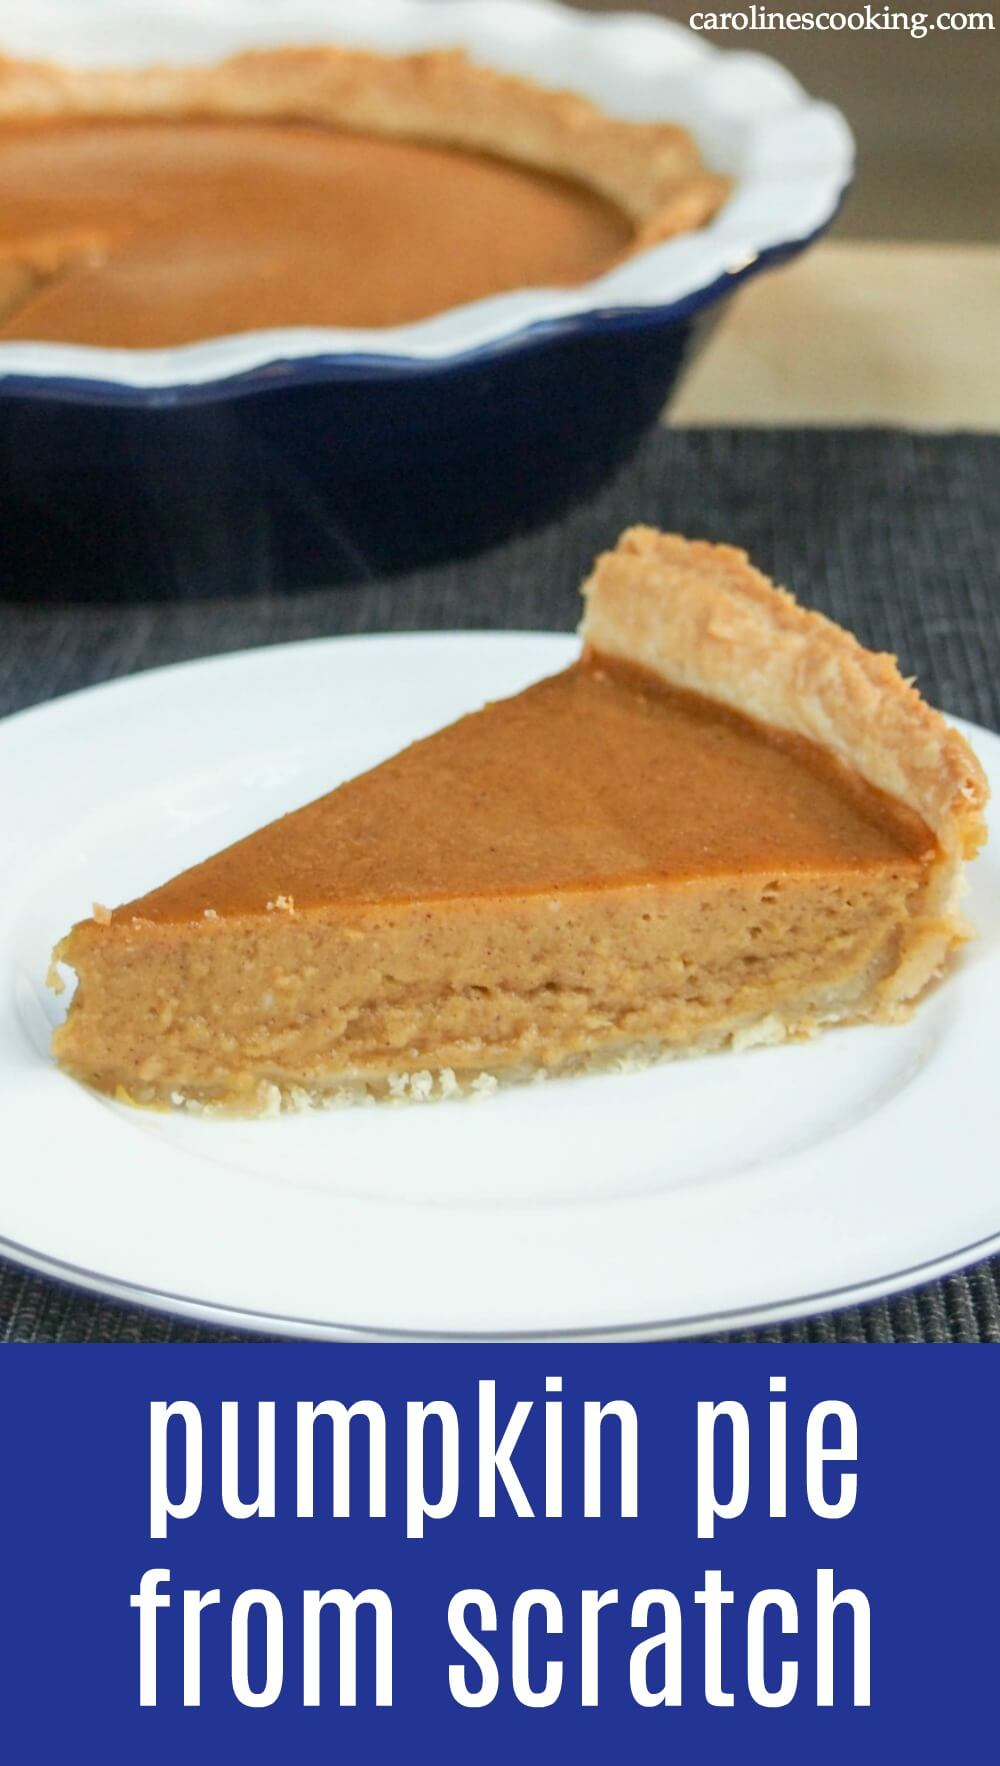 A classic pumpkin pie from scratch is easier than you might think! Get all the tips you need for our family favorite - with a wonderfully smooth texture, it's flavorful & warmly spiced. The perfect Thanksgiving dessert or treat for any time throughout fall. #pumpkin #pie #pumpkinpie #piefromscratch